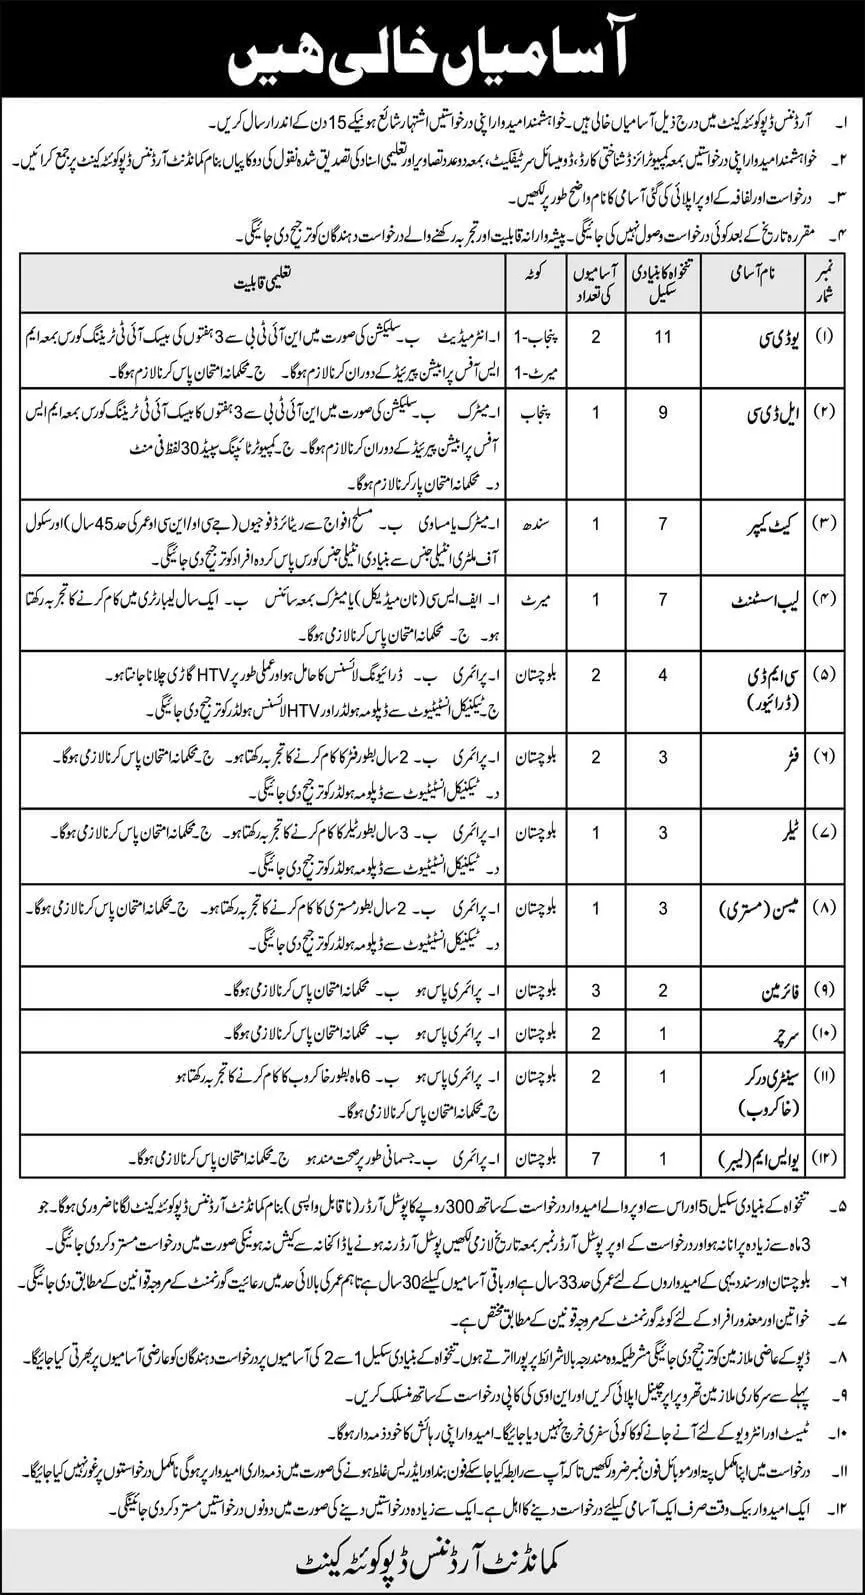 New Army Jobs Today 2021 At Ordnance Depot Quetta Cantt